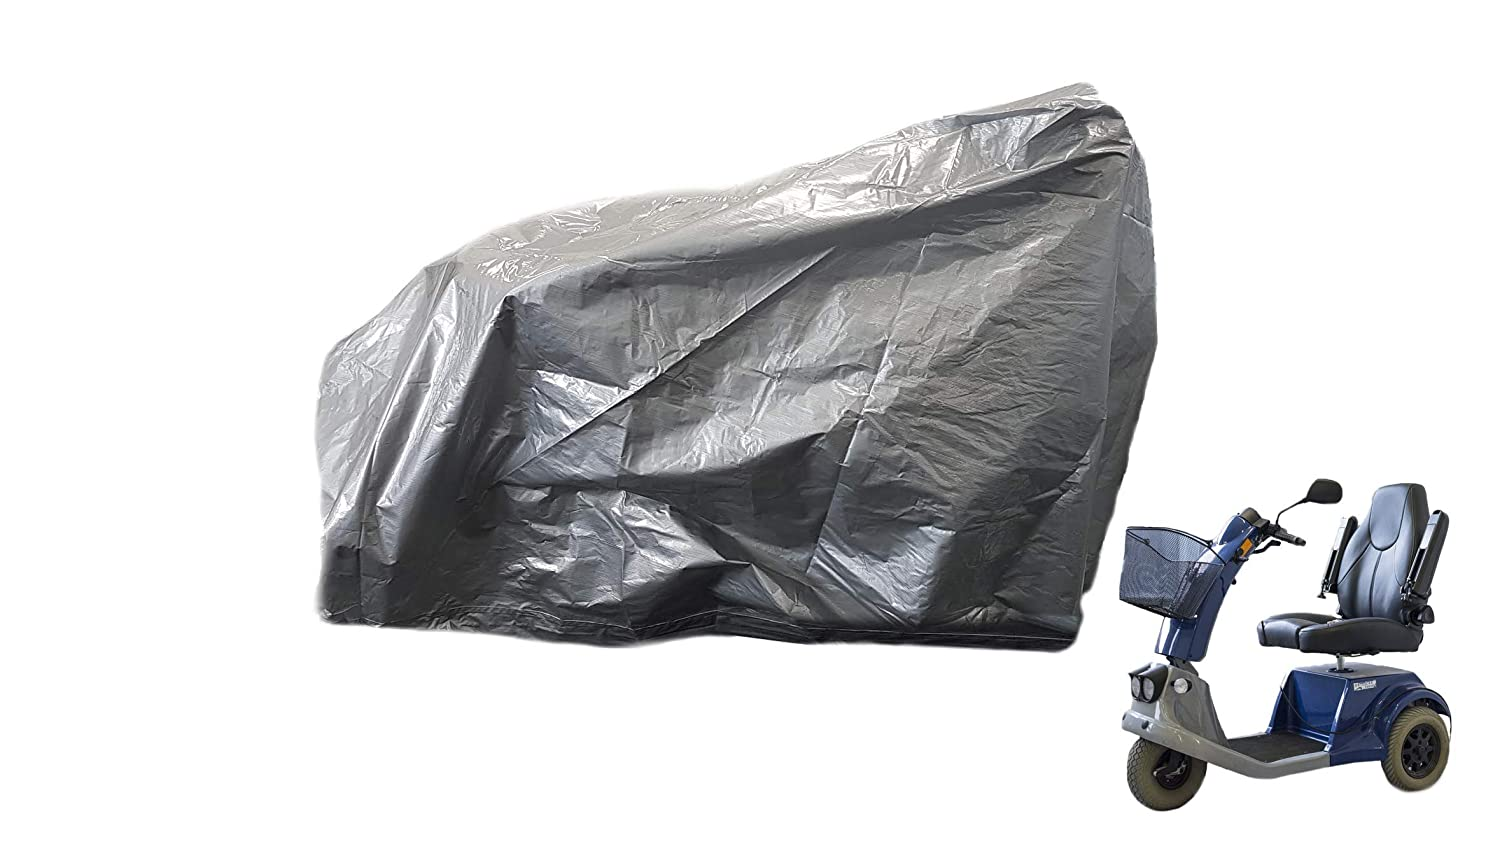 Yuzet Reinforced Mobility Scooter Cover Storage Rain Waterproof Disability Protector 180 X 65 X 100CM